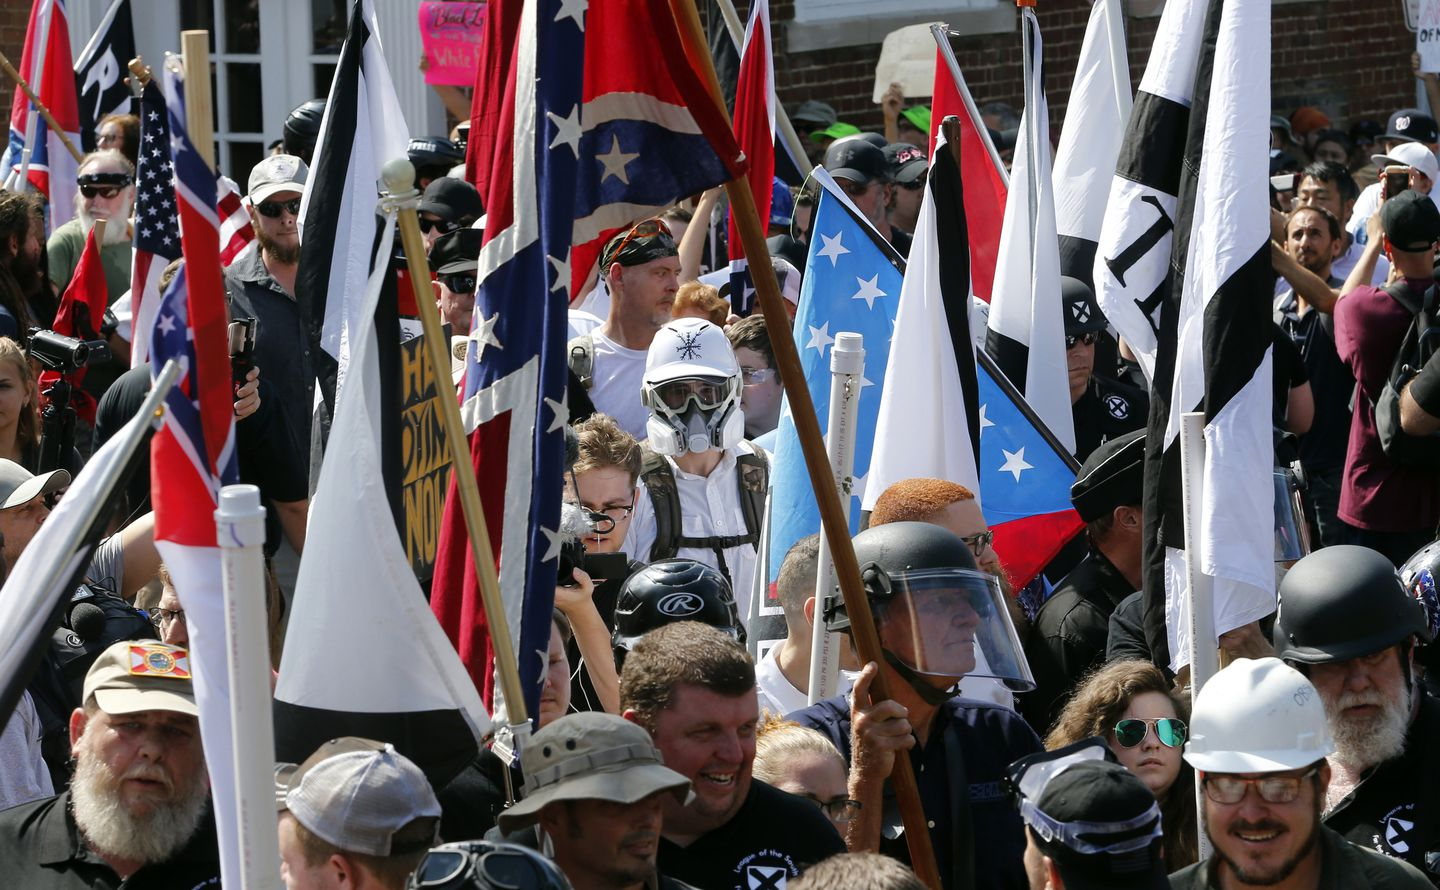 White nationalist demonstrators walked into the entrance of Lee Park surrounded by counter-demonstrators in Charlottesville, Va., on Aug. 12.